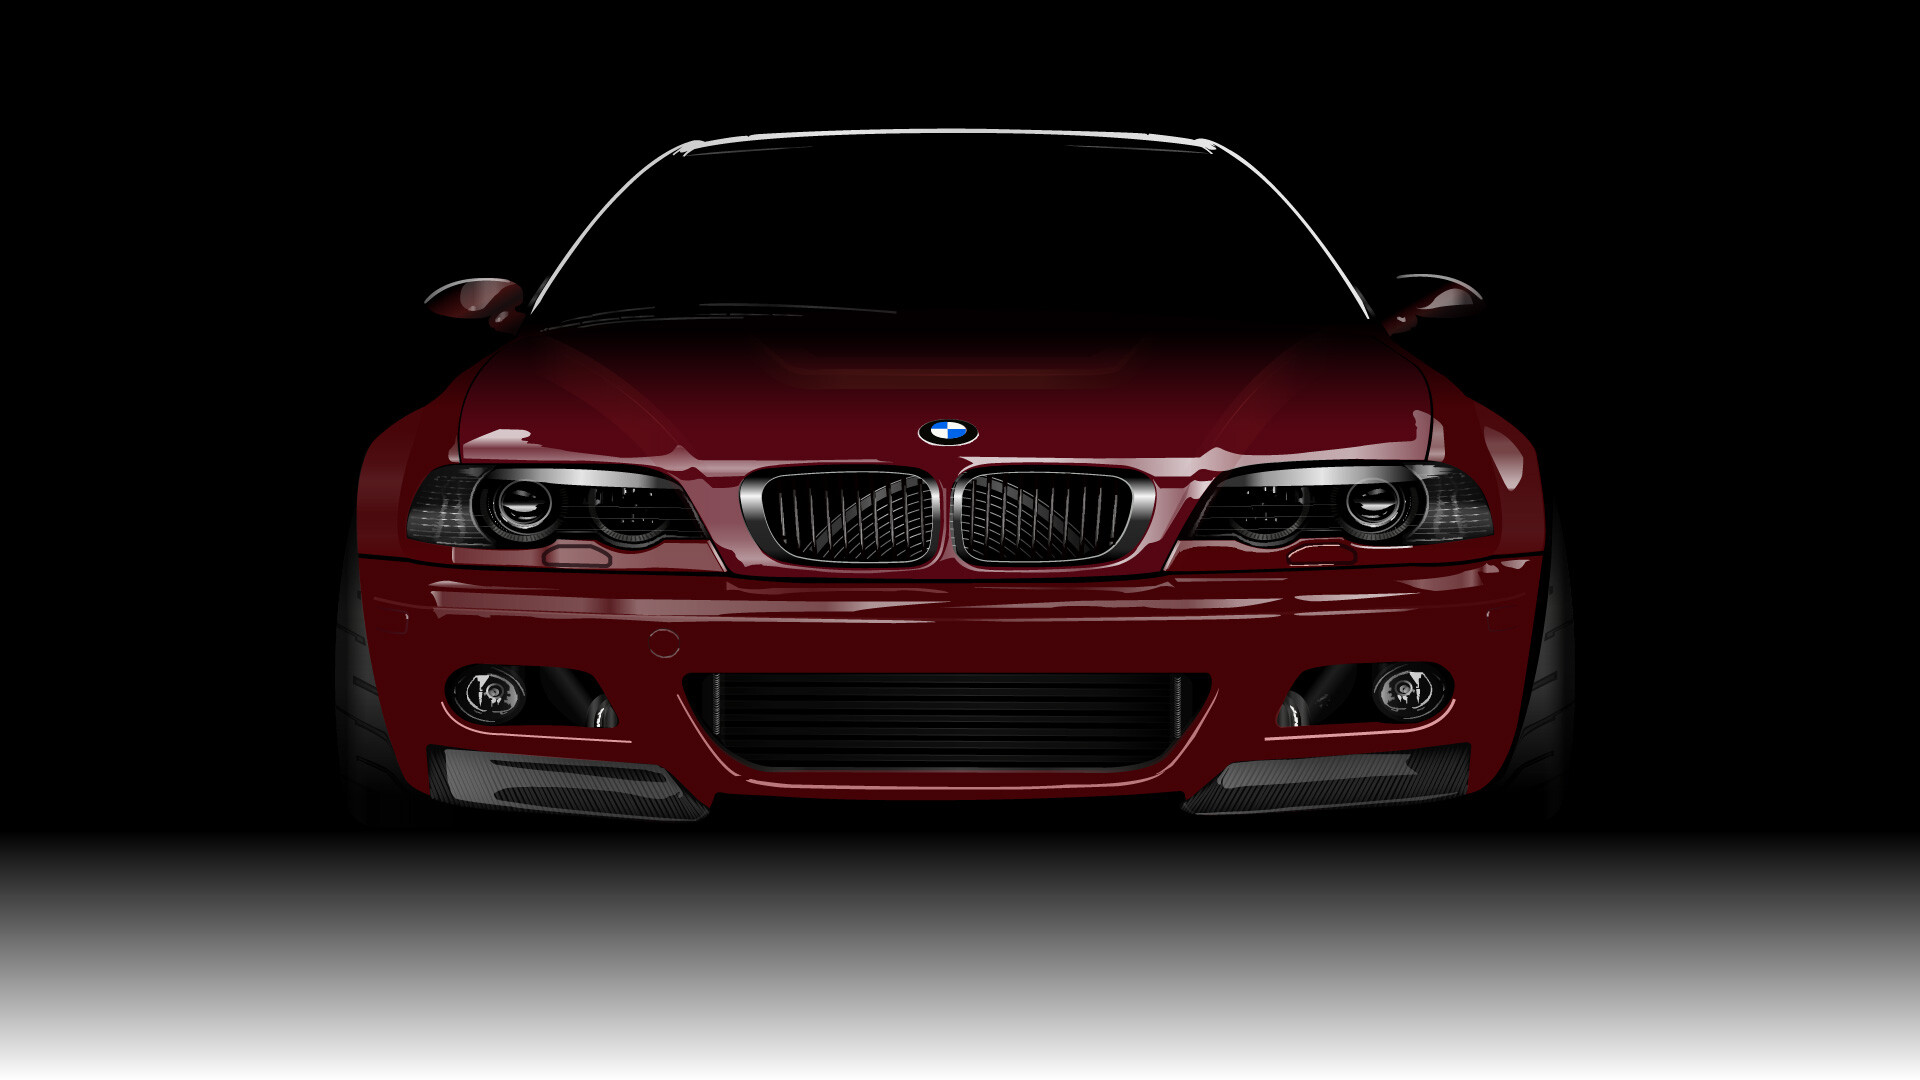 Artstation Bmw M3 E46 Illustrator Draw Oguz Kaan Tartar